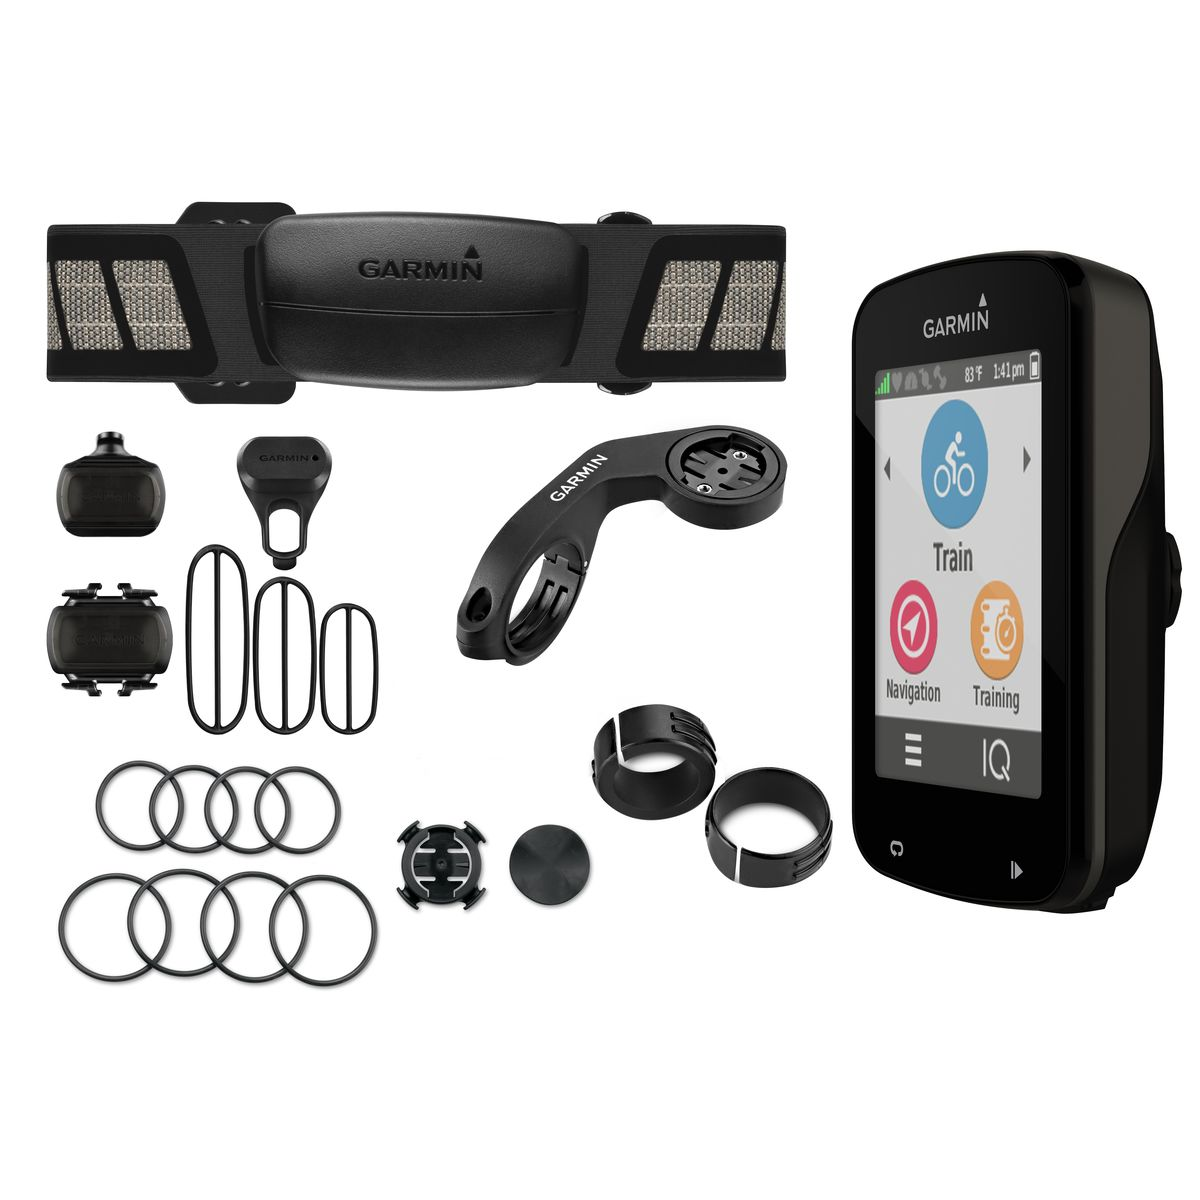 Gps Garmin Edge 820 Bundle Brinde Pelicula + Kit Luz Bike